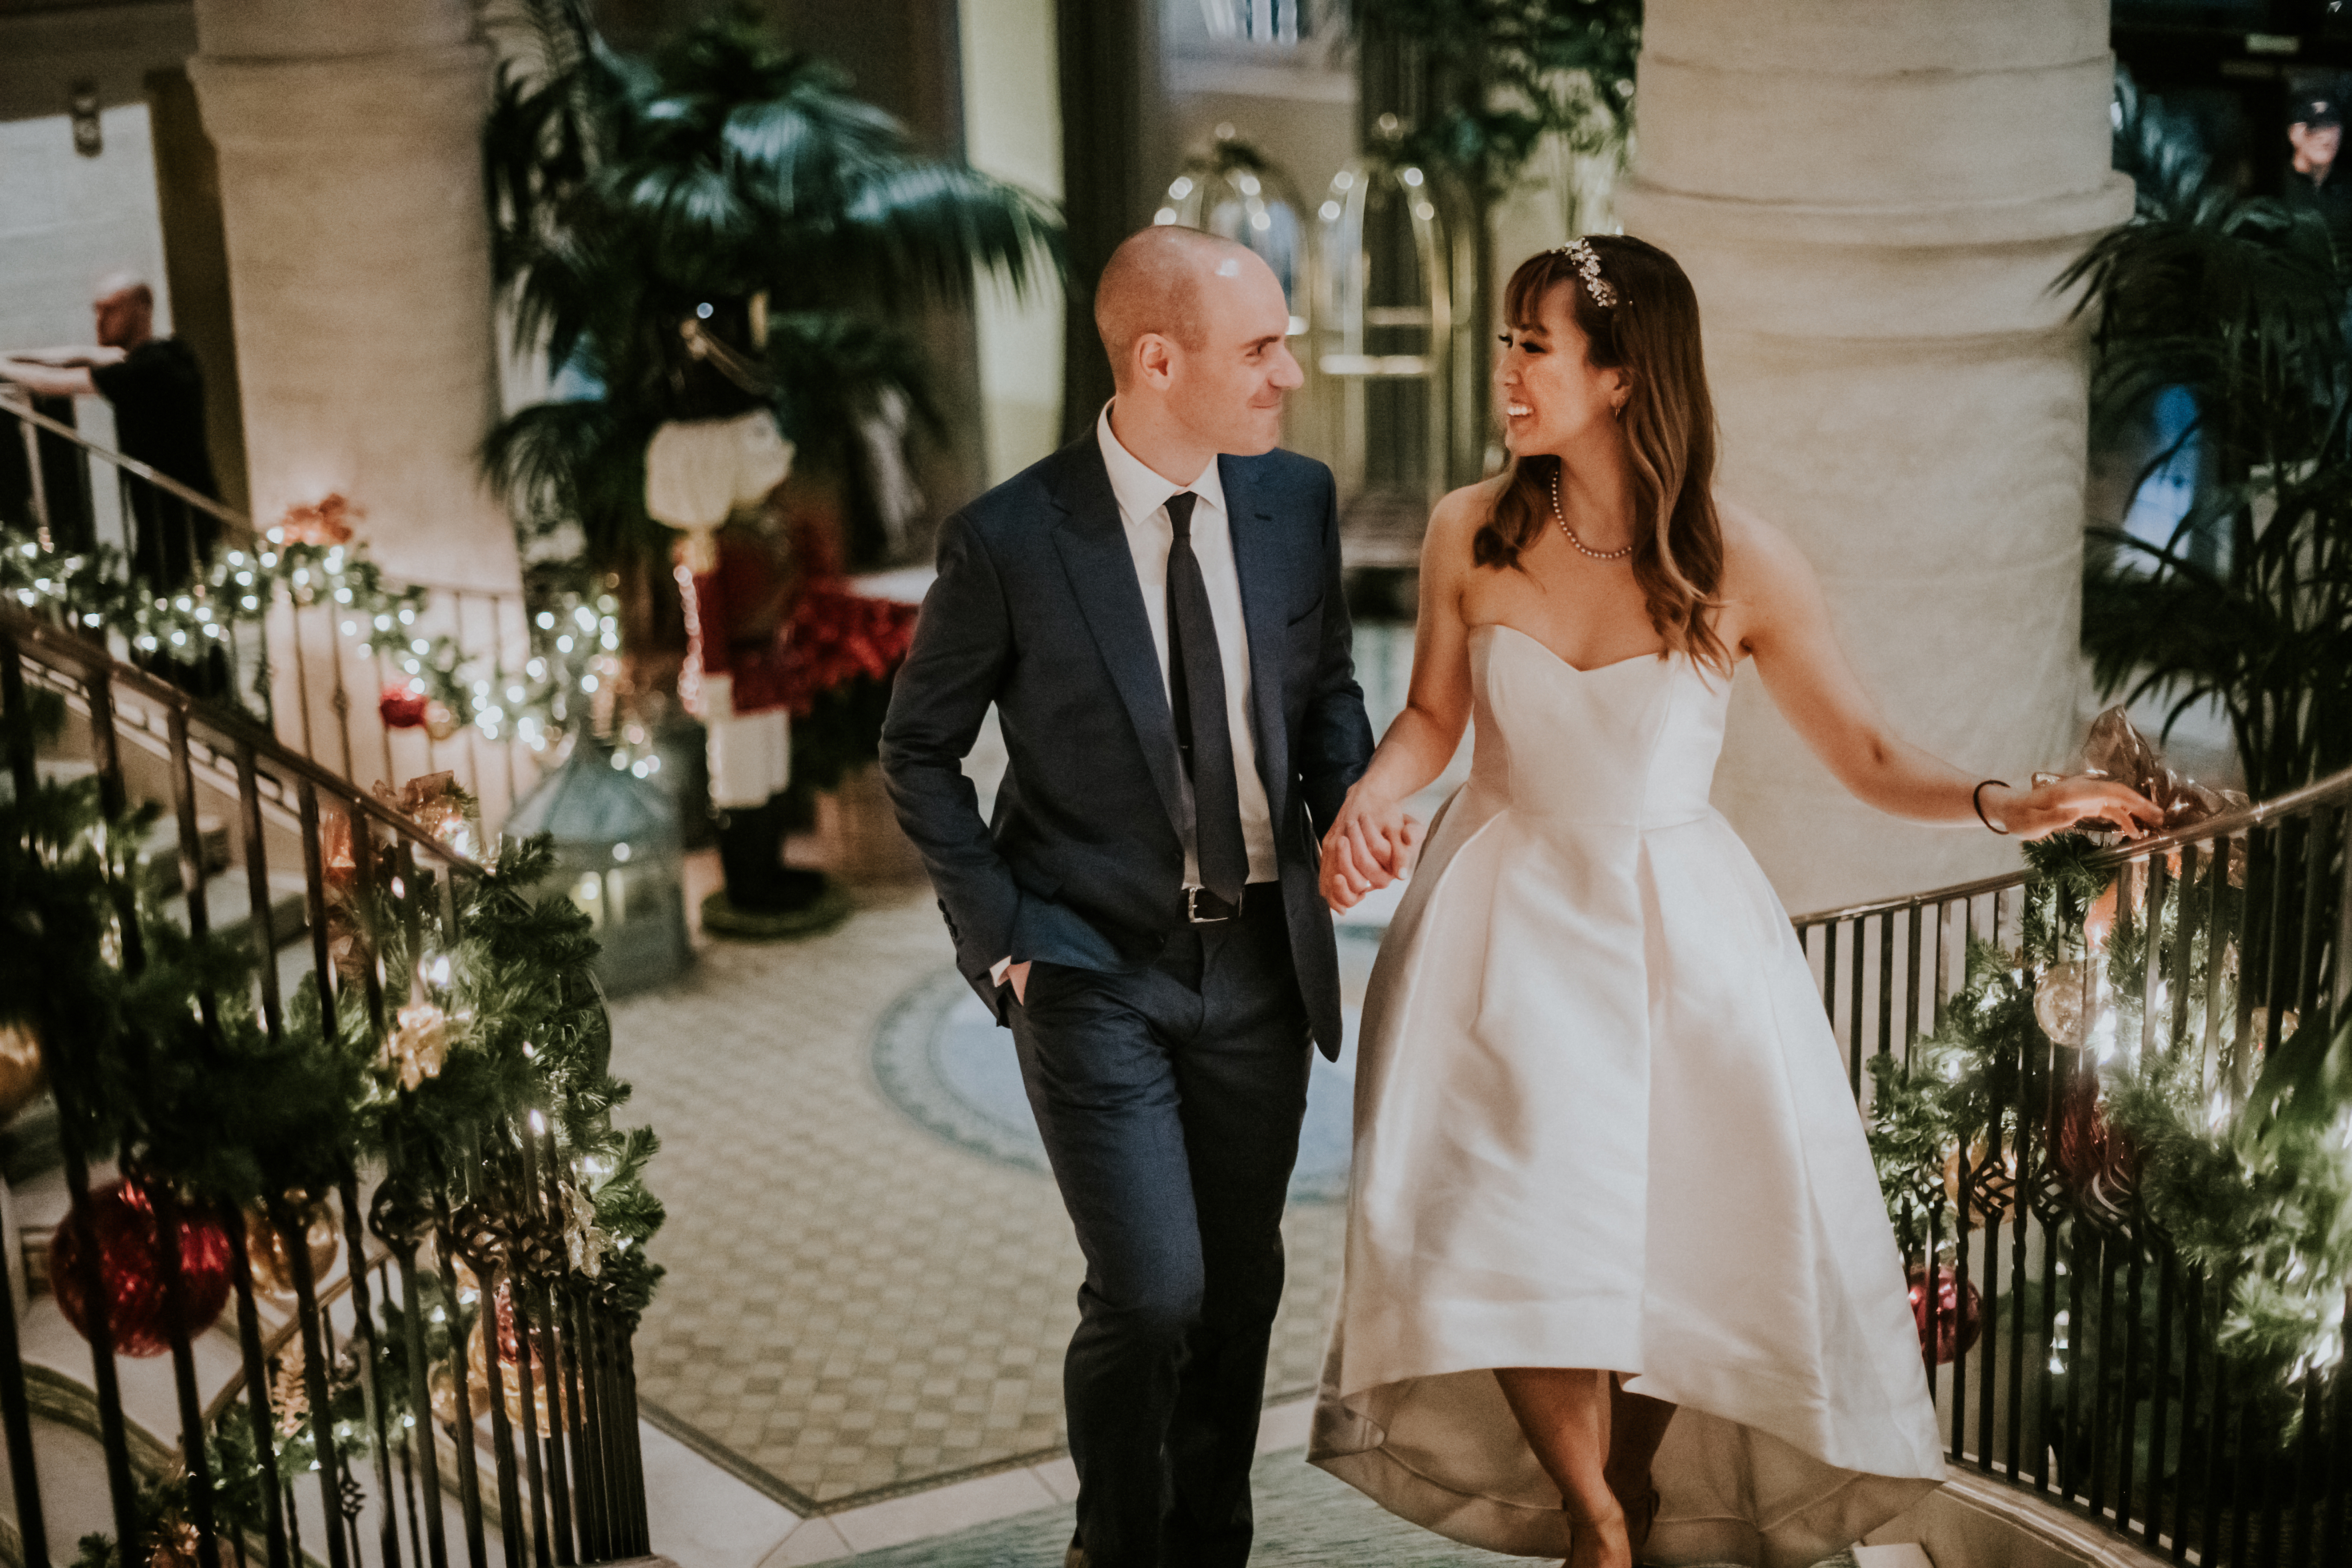 bride and groom walking upstairs of hotel wedding day photography california wedding hotel casa del